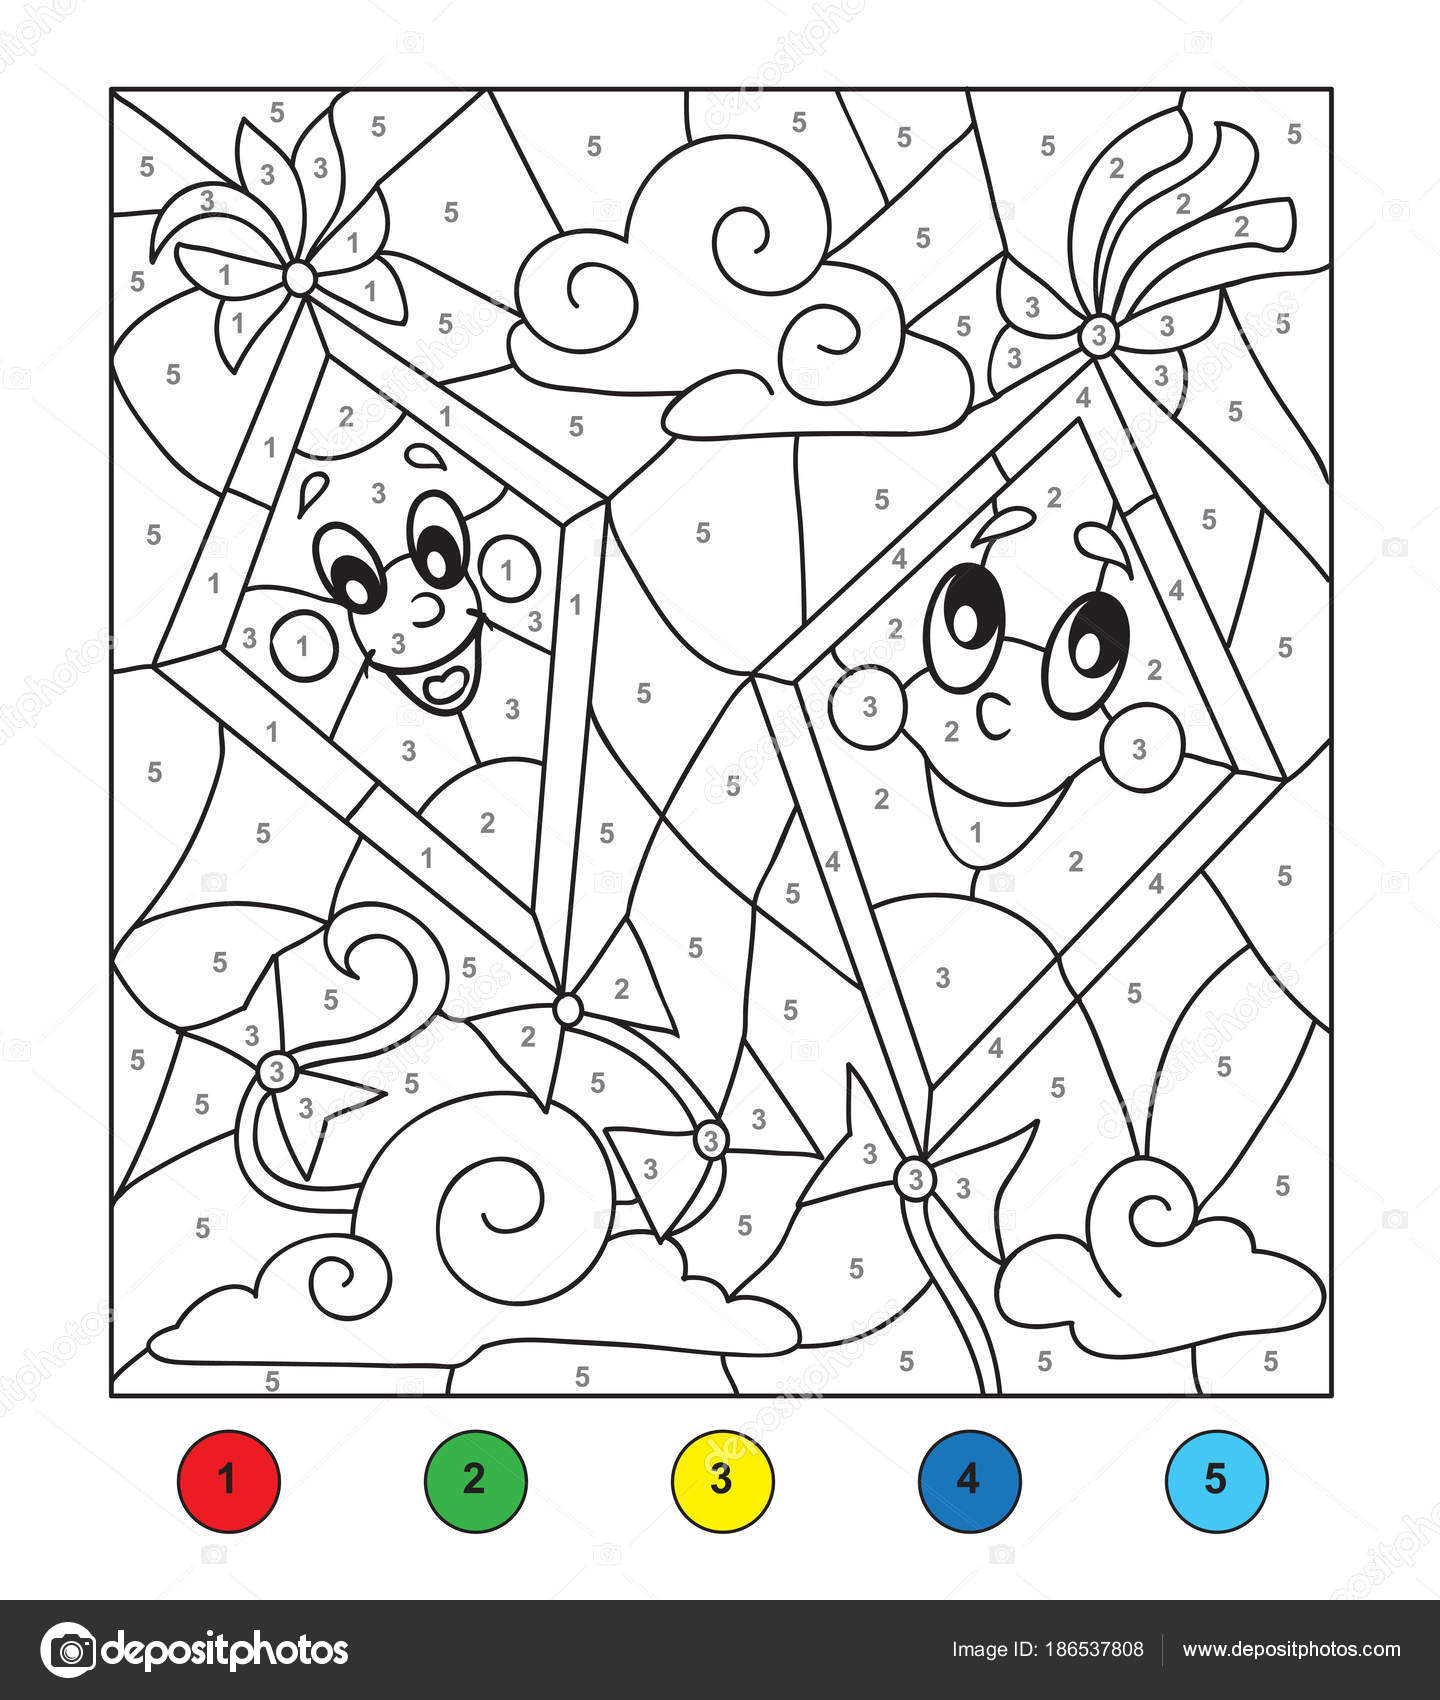 Color by number (Kites). — Stock Vector © efoxly #186537808